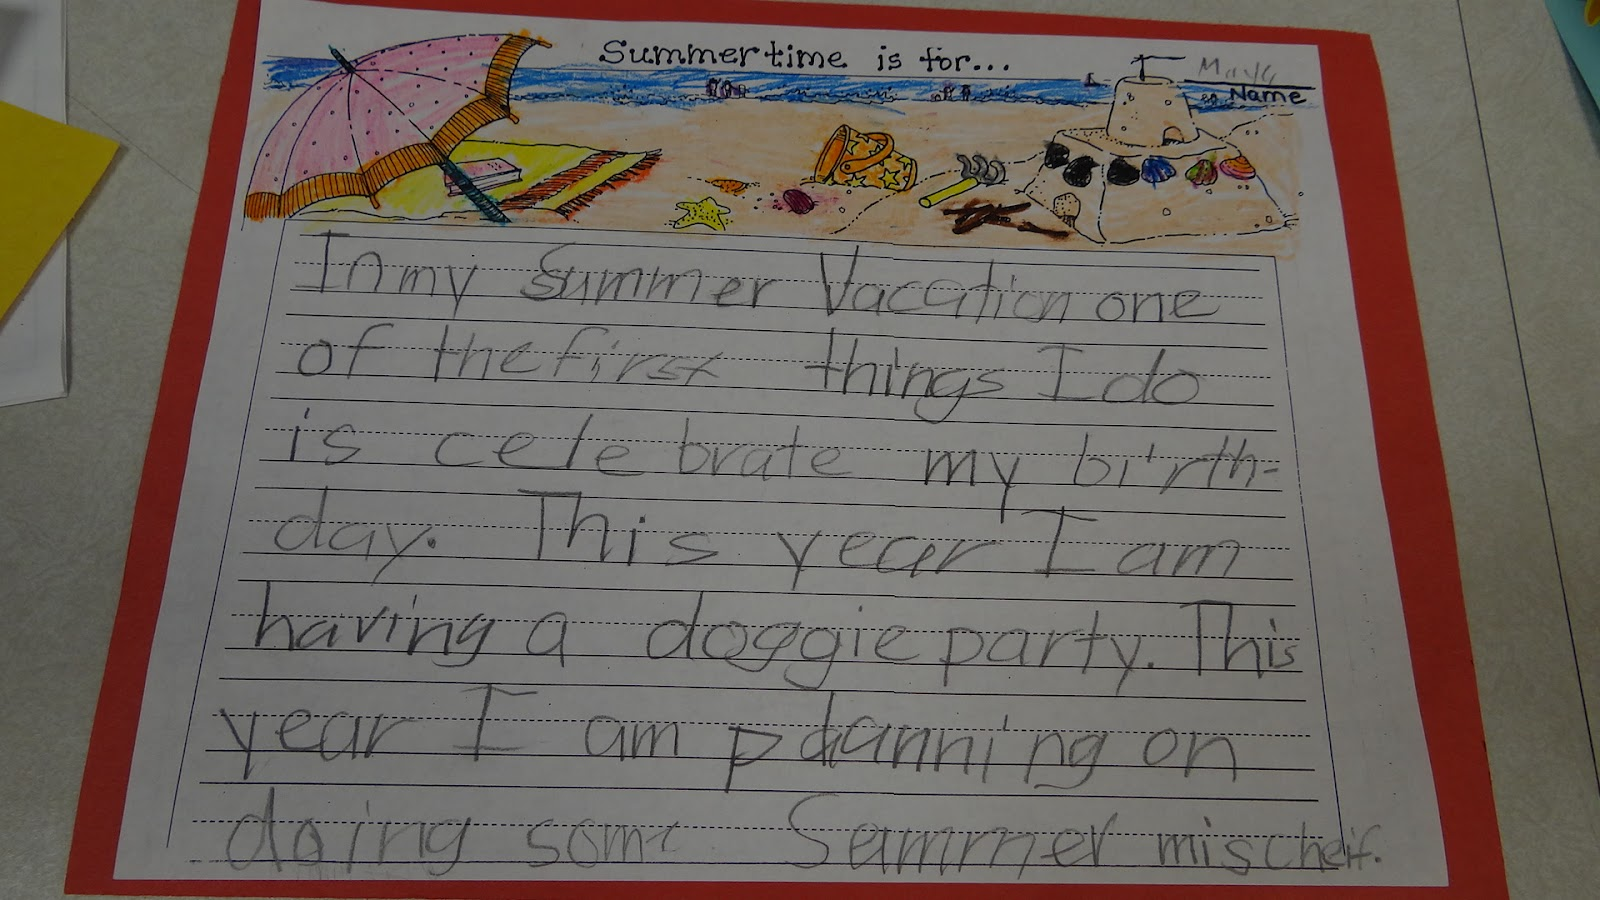 PATTIES CLASSROOM: Summer Vacation Writing